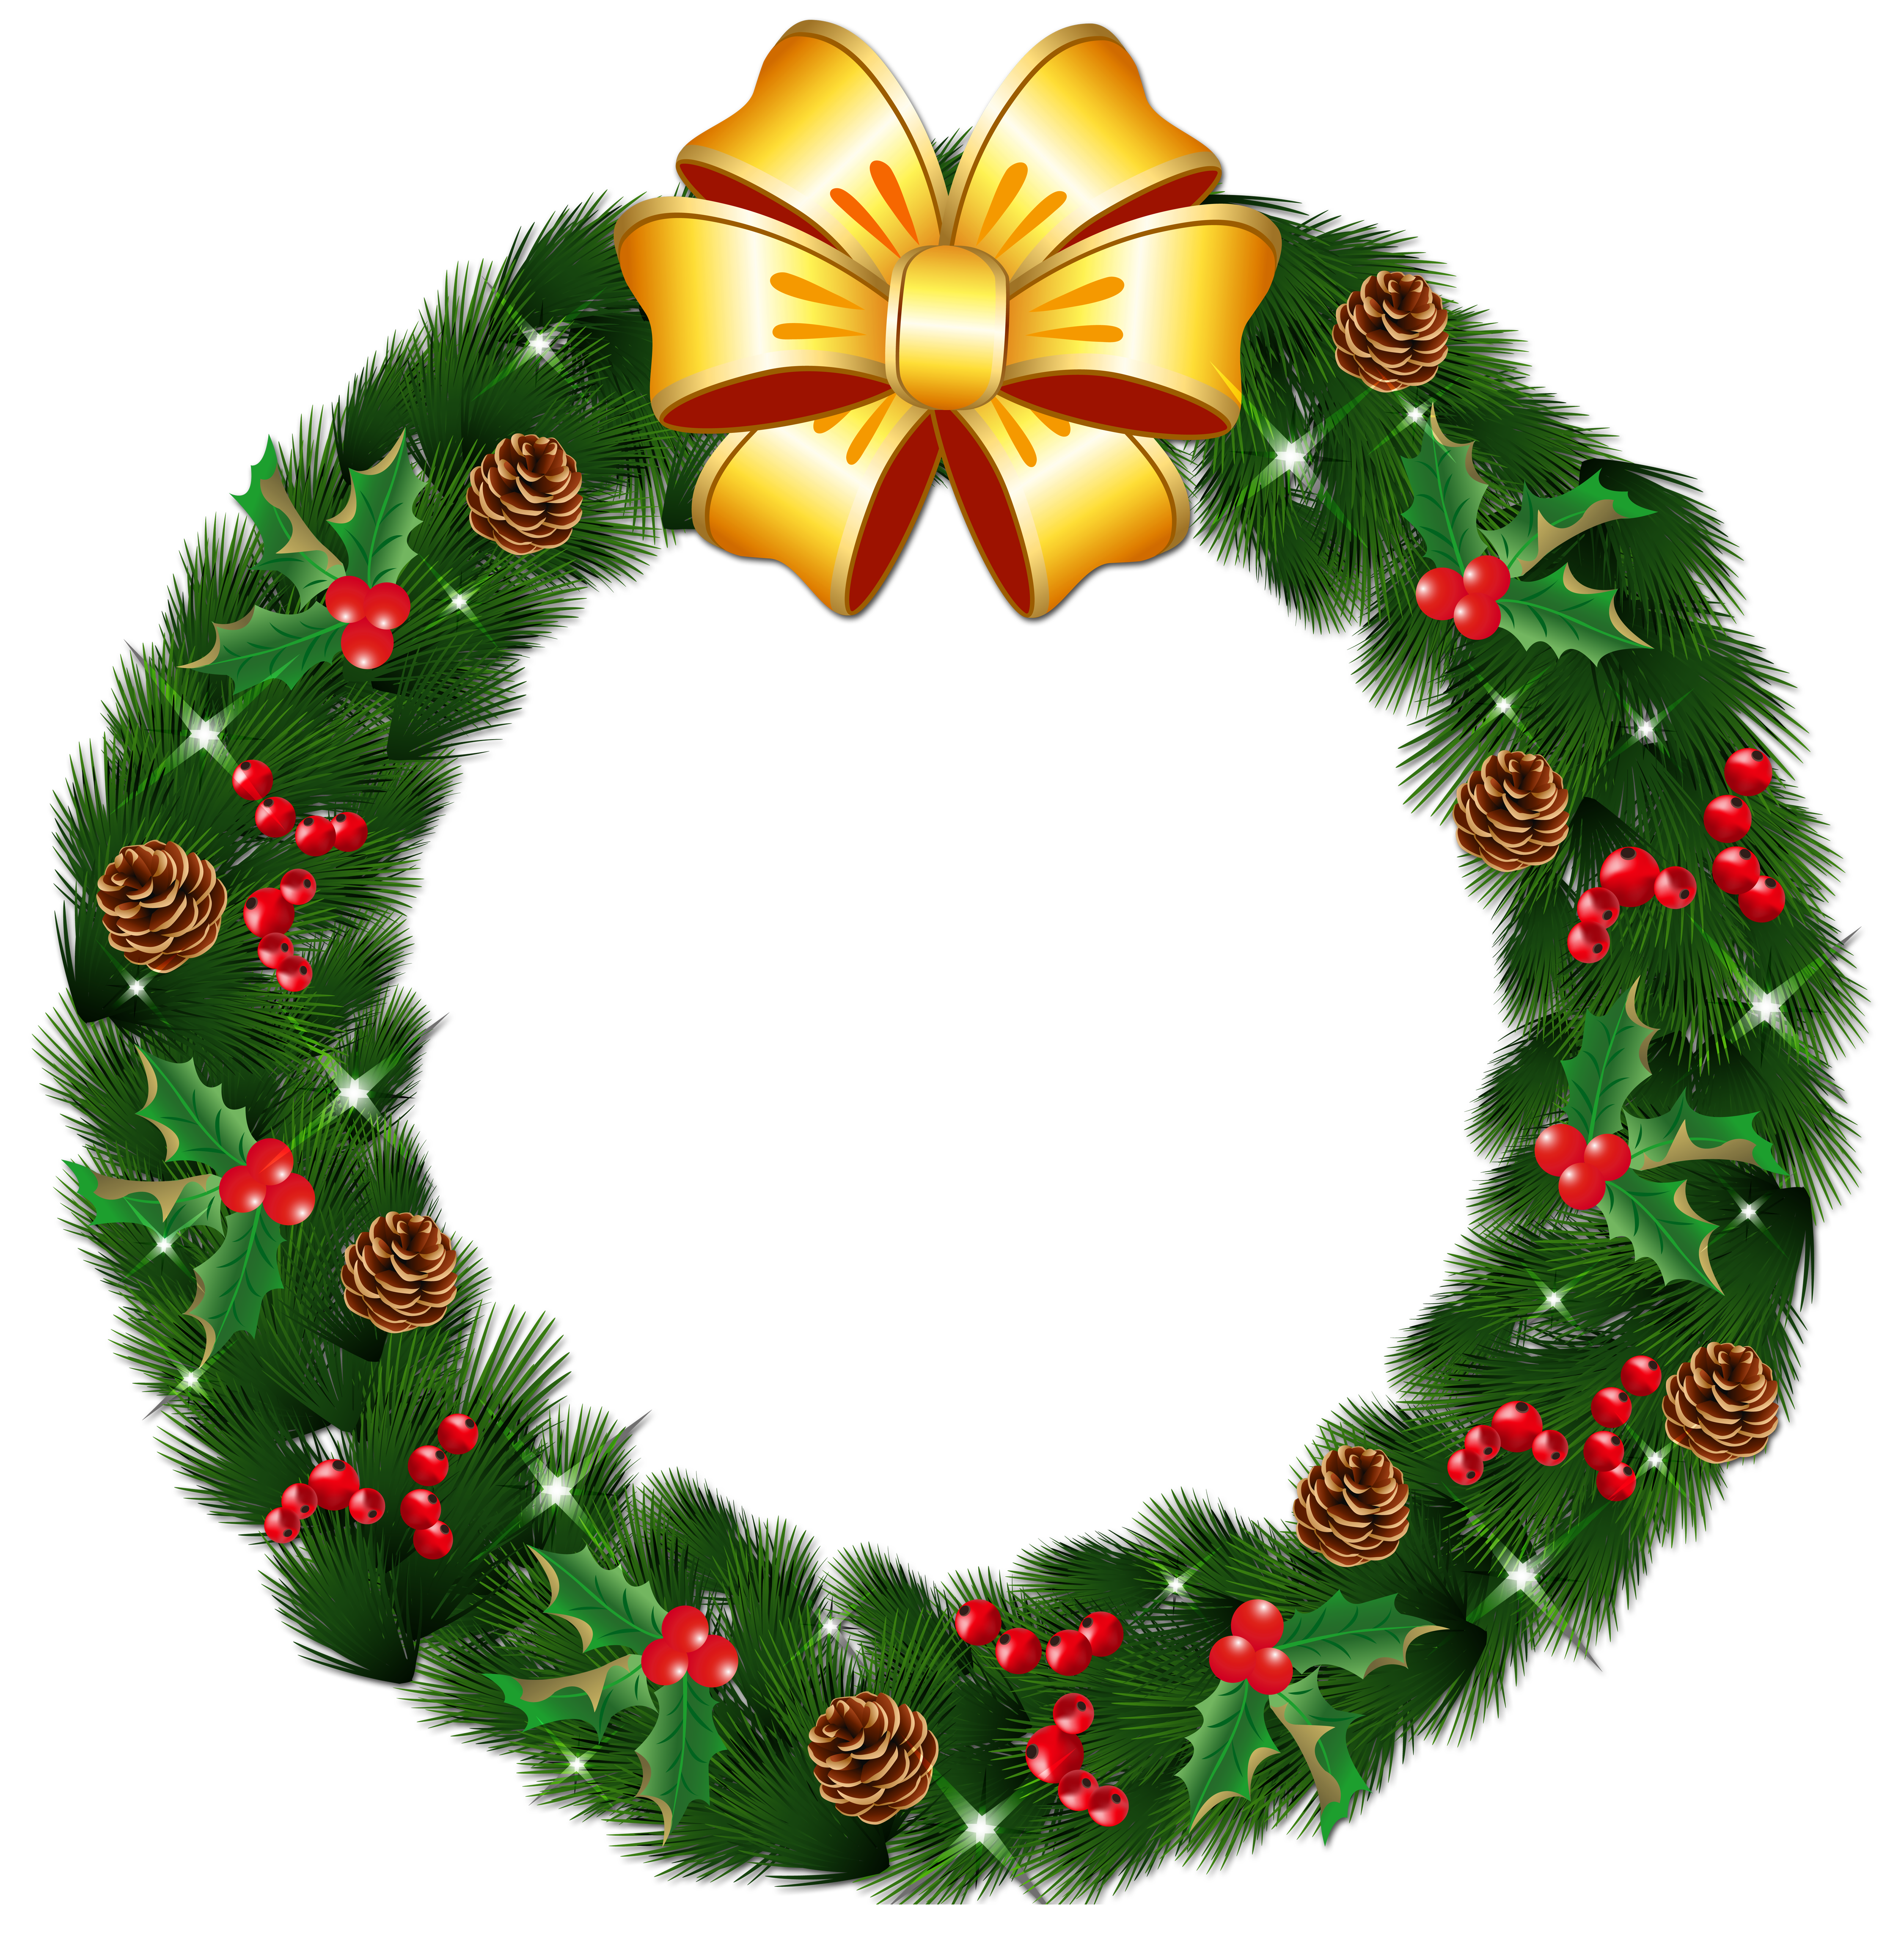 Christmas Wreath Clipart at GetDrawings.com | Free for personal use ...